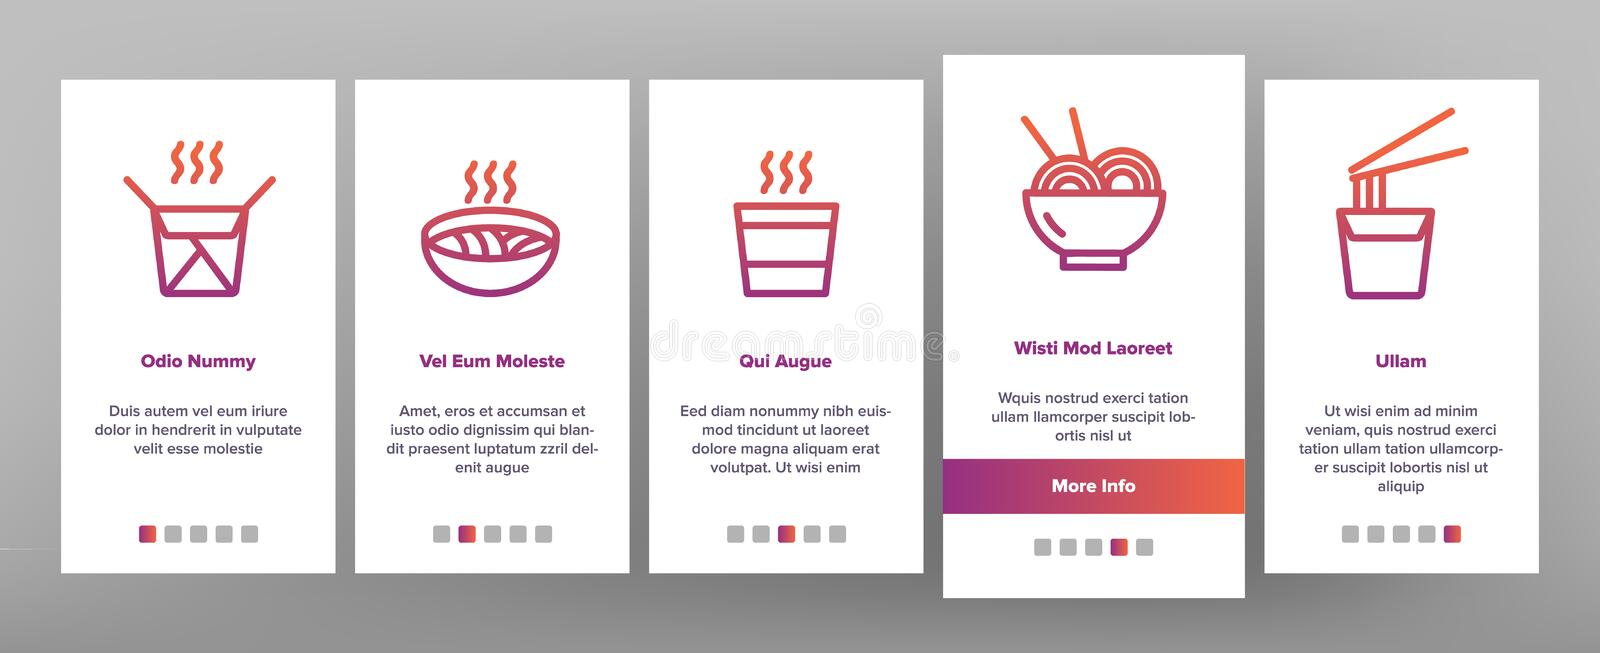 Ramen Spaghetti Food Onboarding Icons Set Vector royalty illustrazione gratis